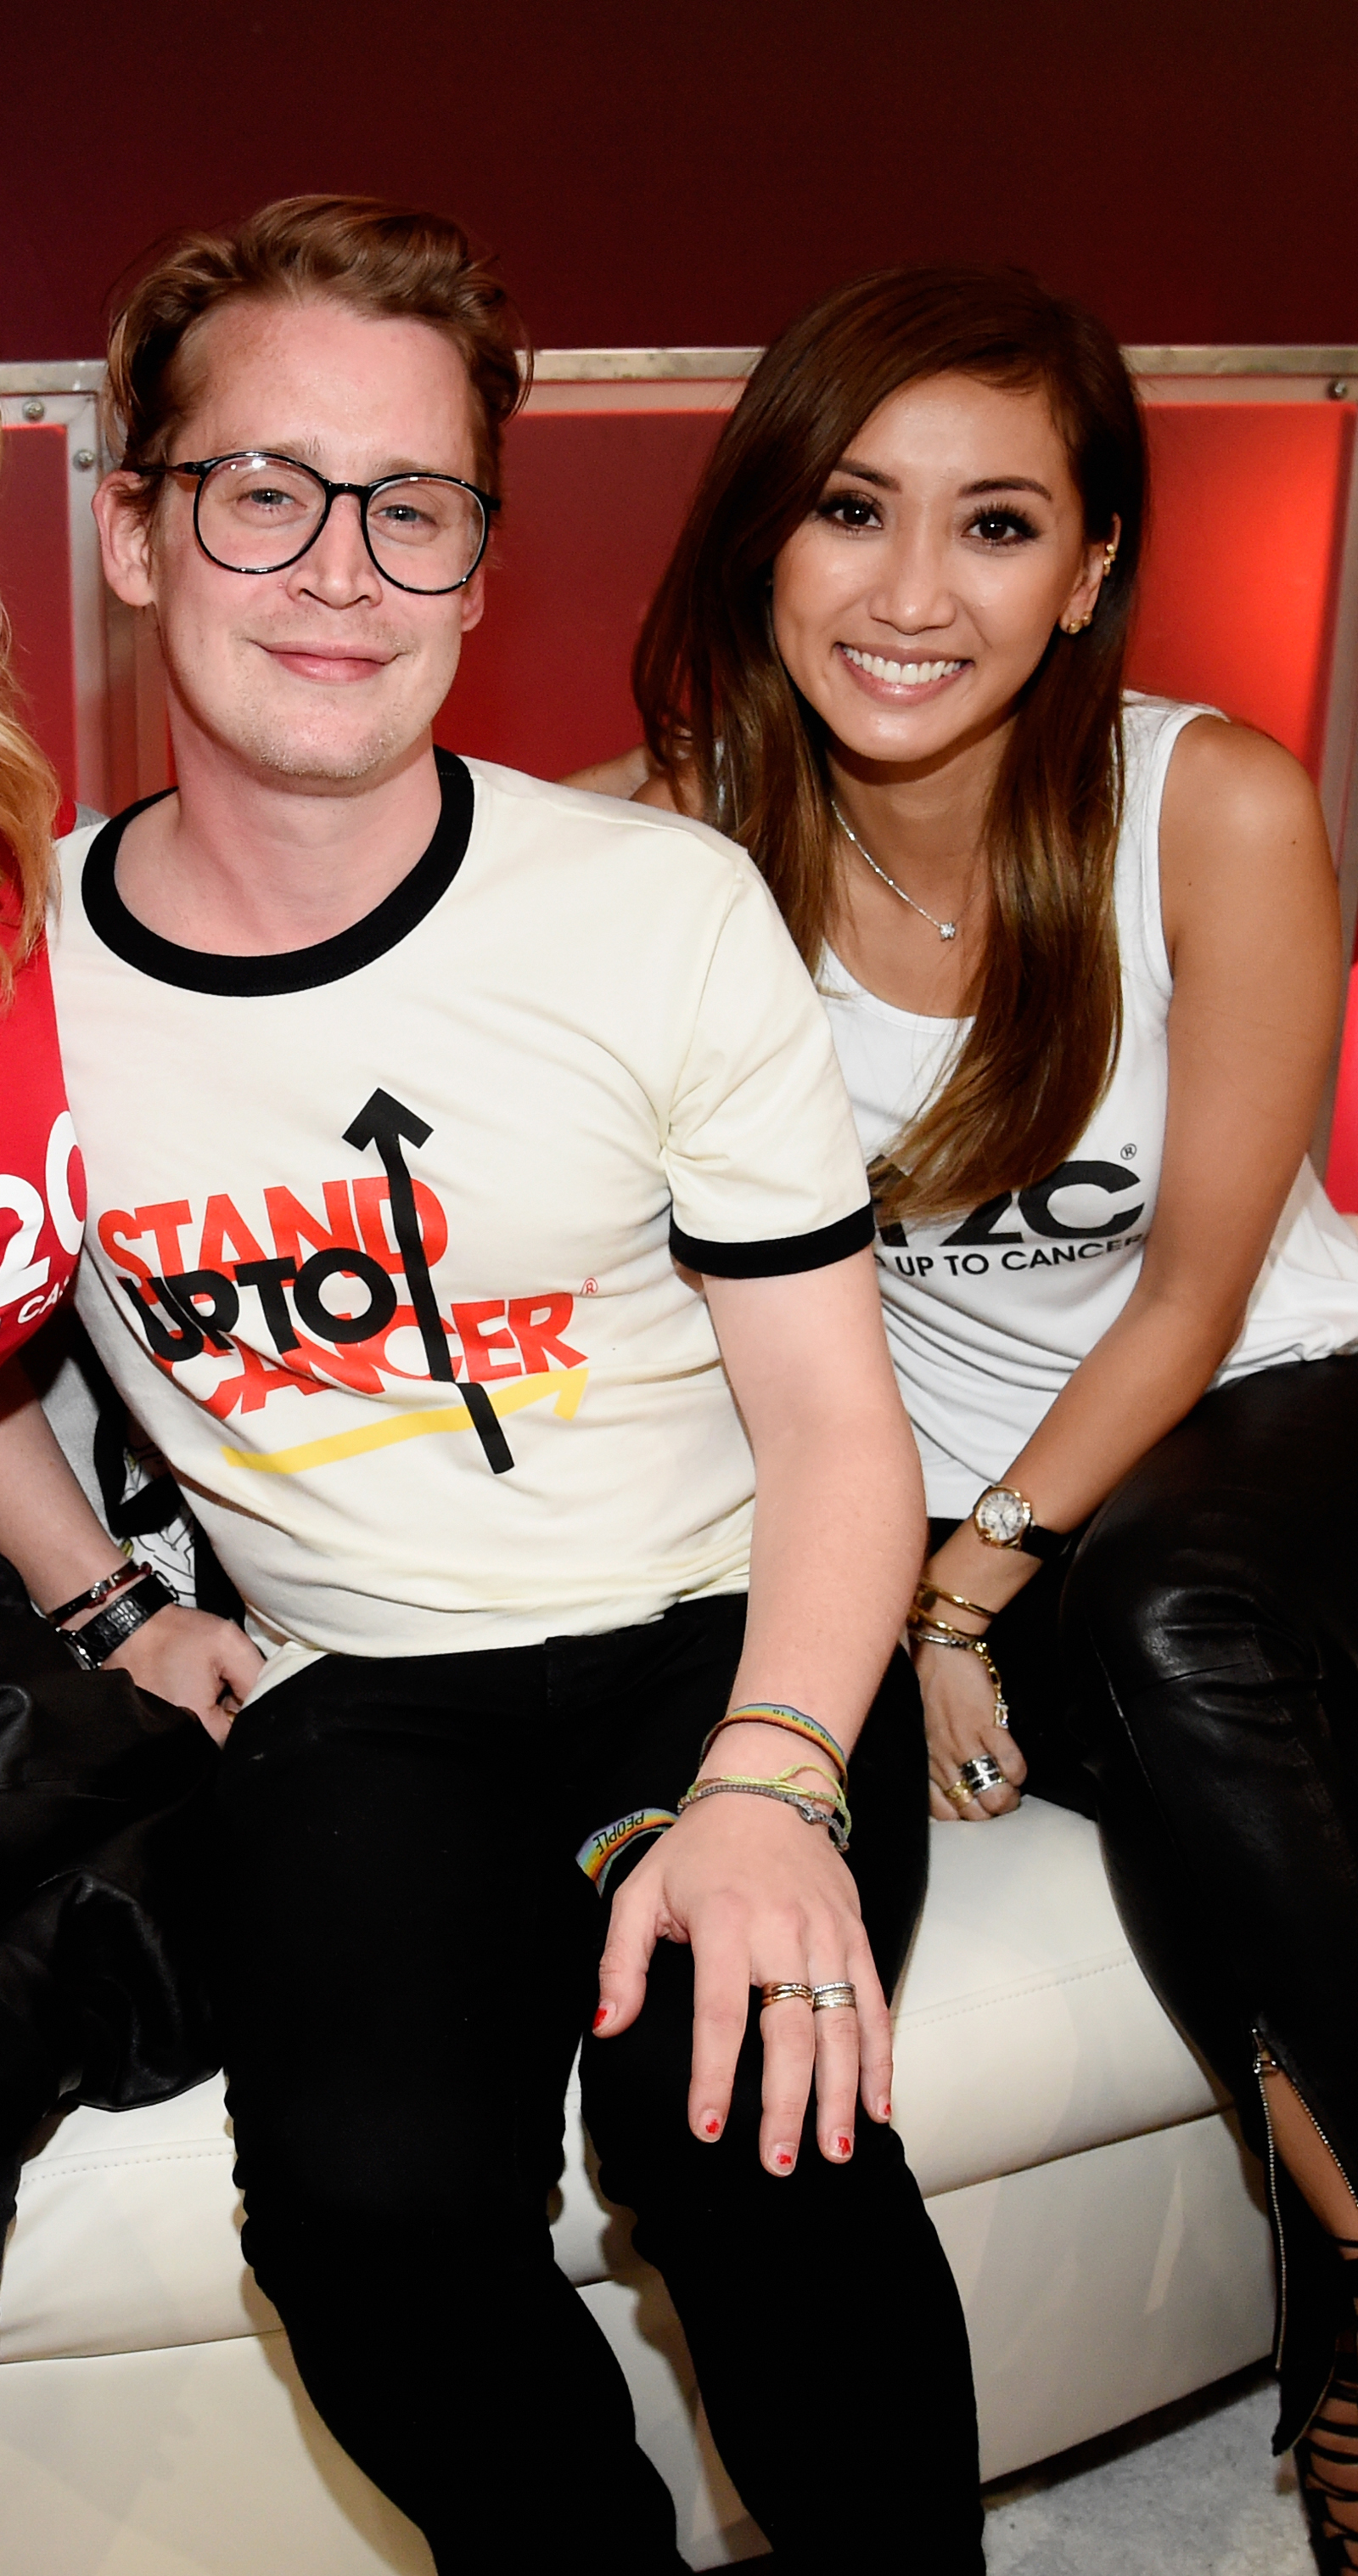 Macaulay Culkin and Brenda Song welcome their first child together